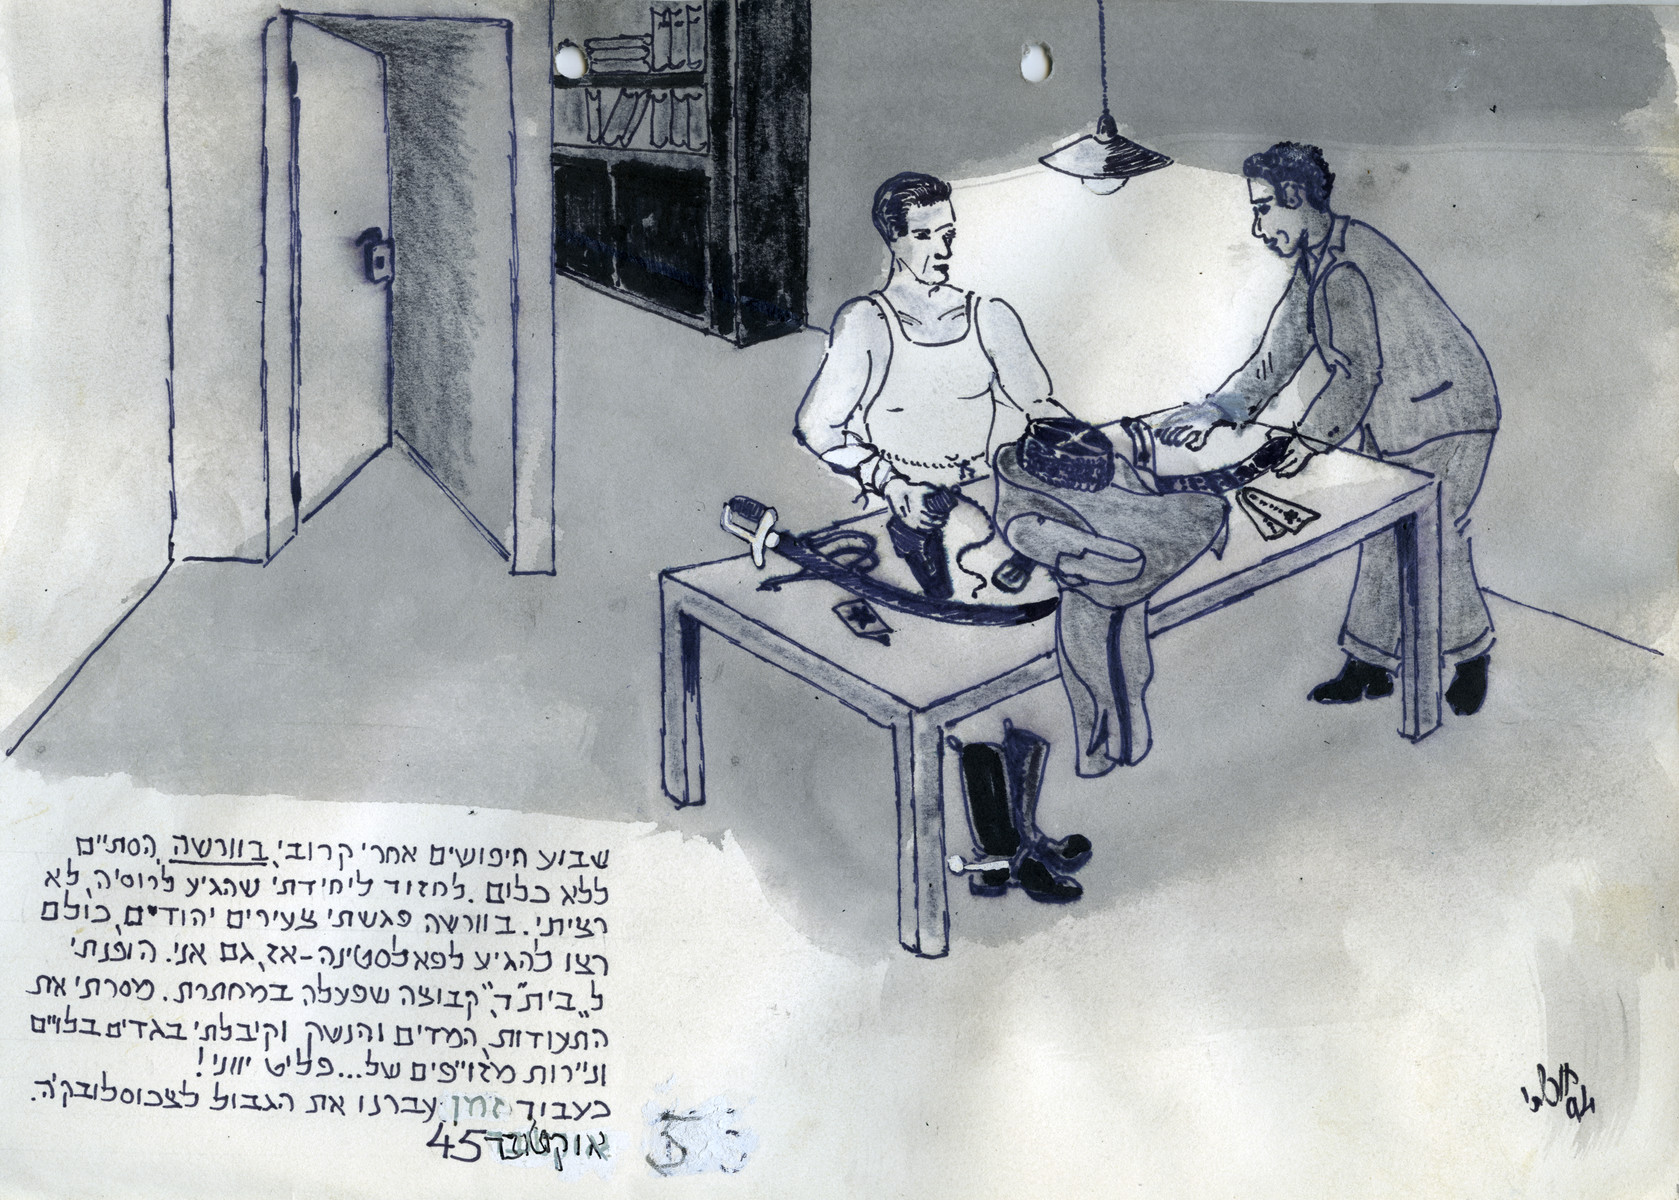 Page of a pictoral memoir drawn by the donor documenting his experiences after the Holocaust.  The drawing shows the artist exchanging his Russian uniform for new clothes and false papers so that he can leave Poland for the West and eventually Palestine.